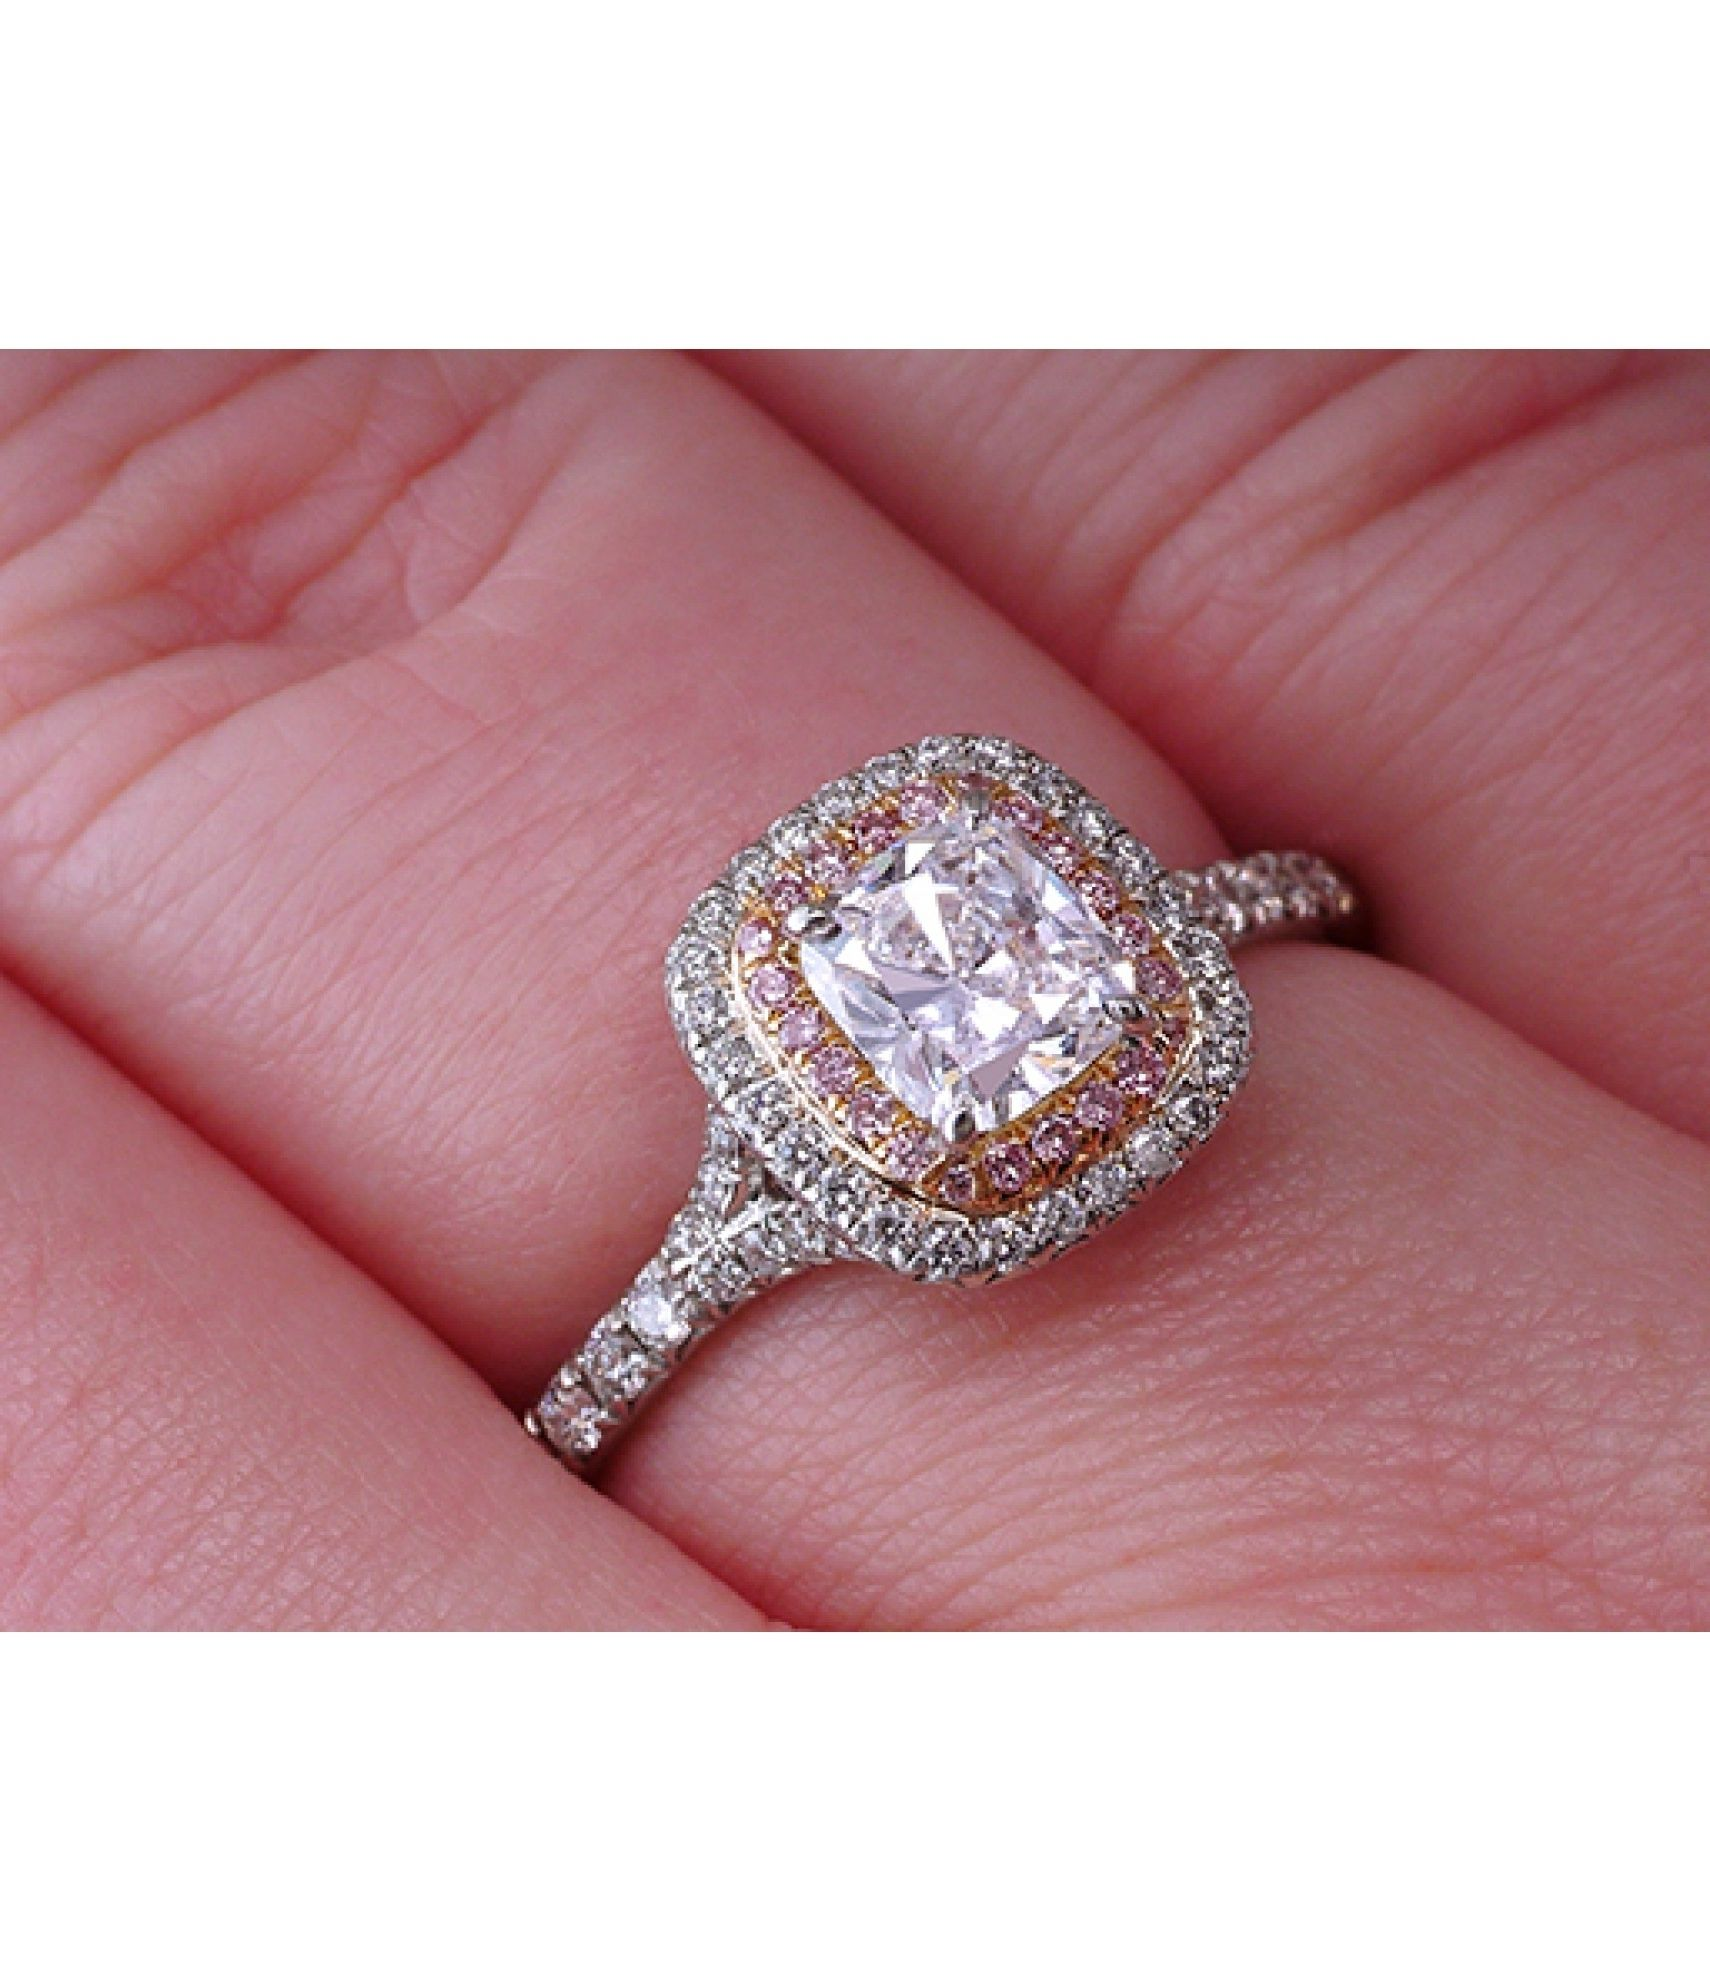 Engagement Ring With Pink Diamonds Tiffany\'S | Ring | Pinterest ...